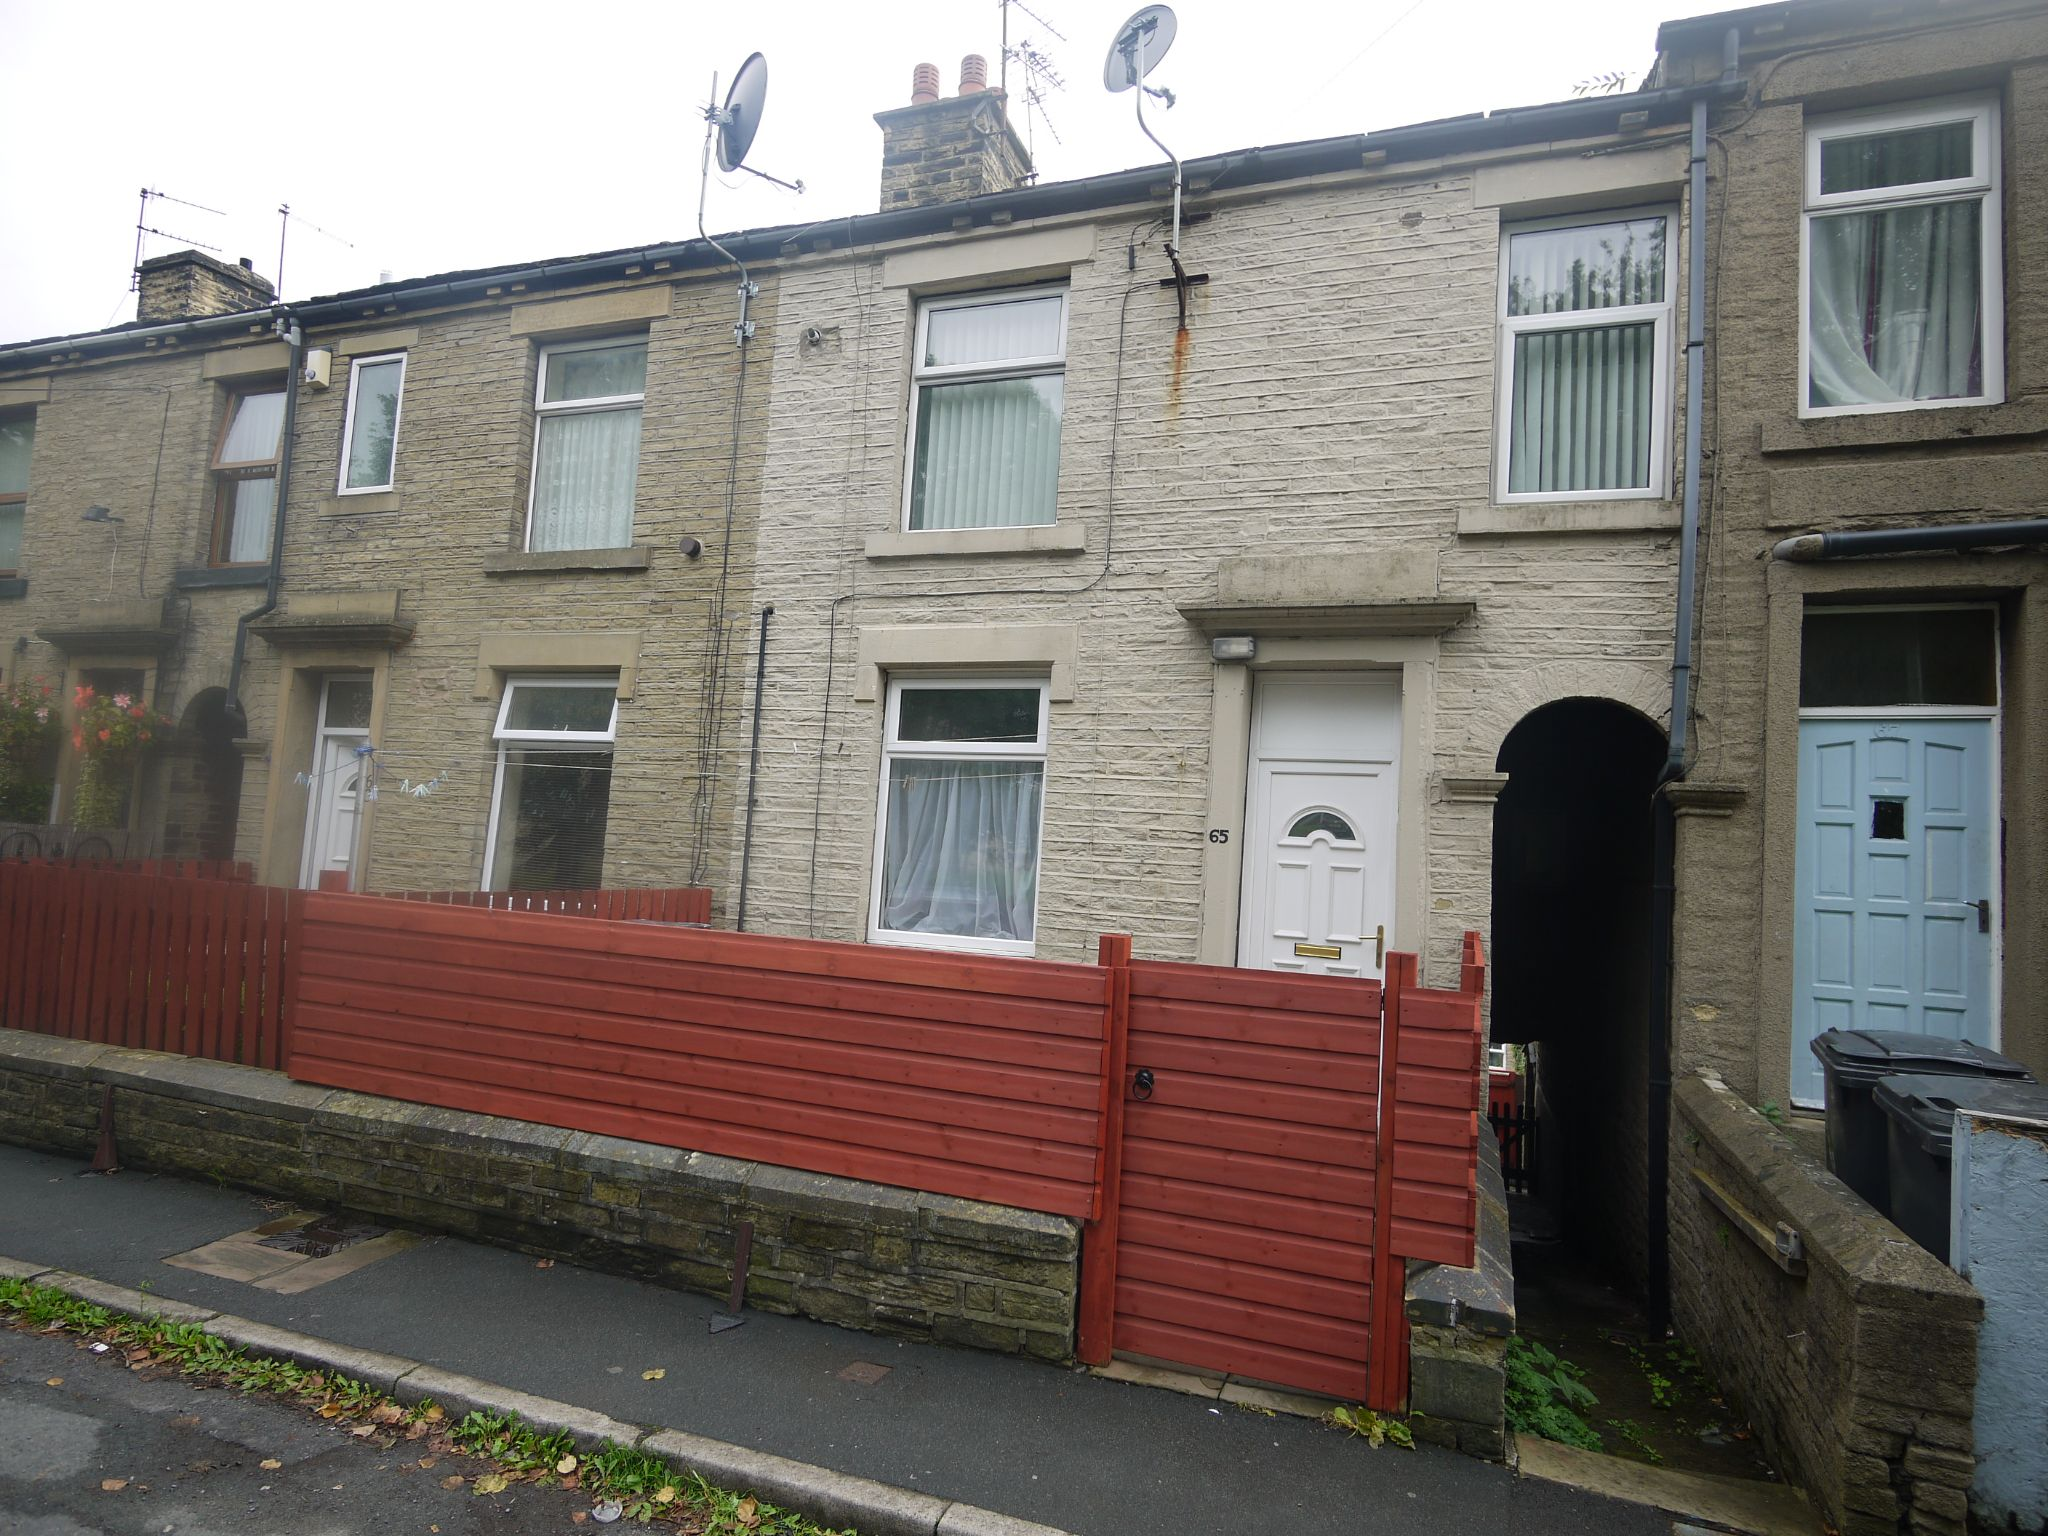 3 bedroom mid terraced house Let in Brighouse - Main.